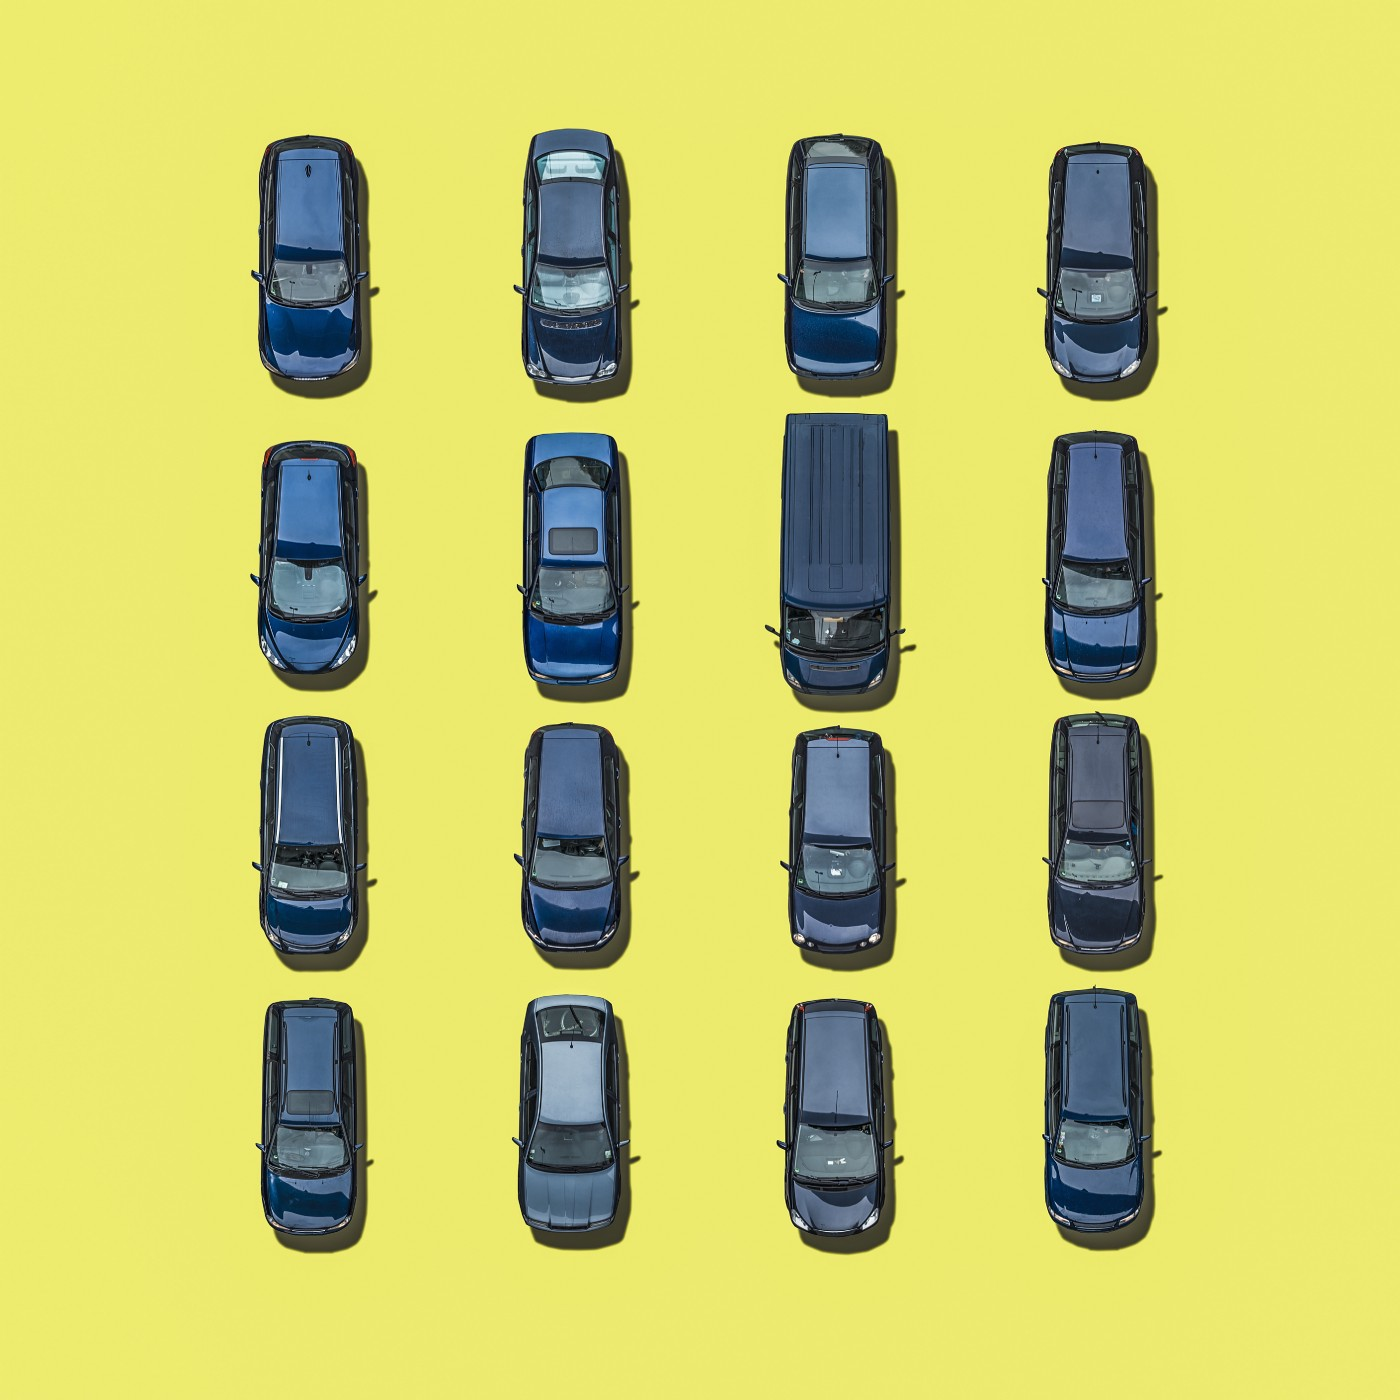 An aerial view of 16 blue cars on yellow background.